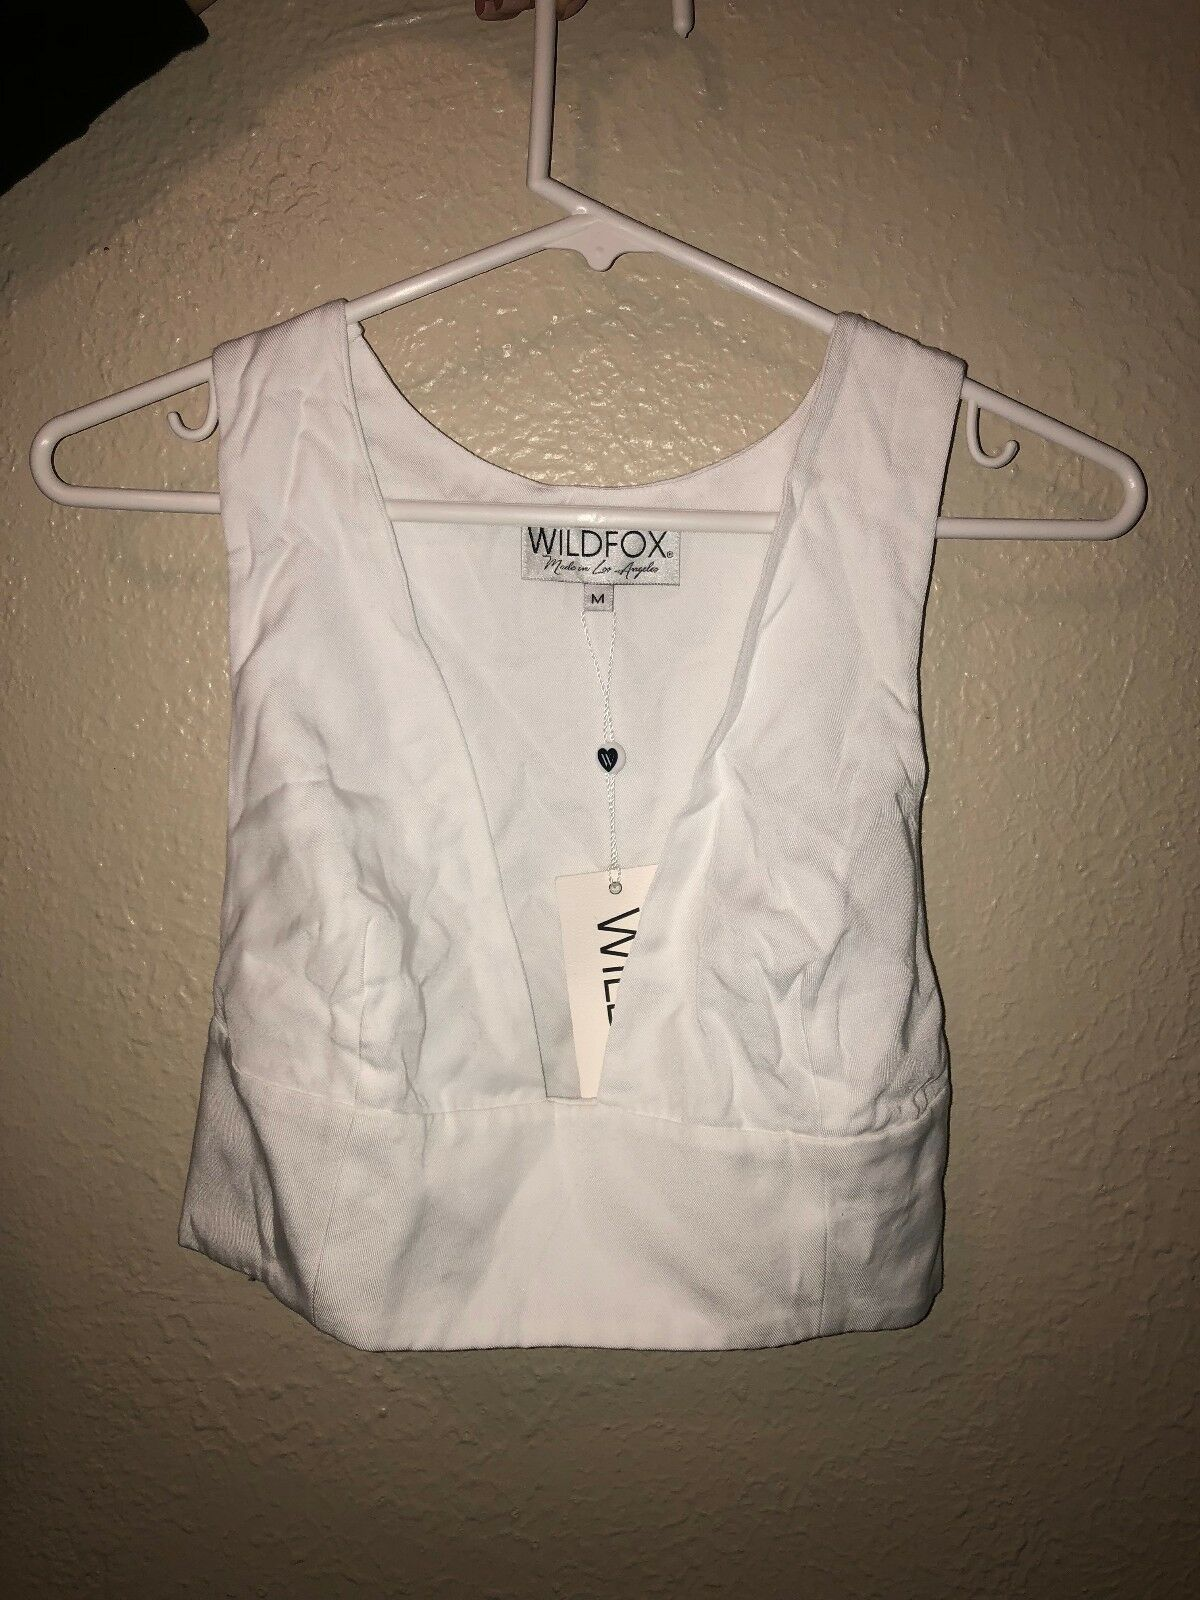 WILDFOX Crop Top Racerback - Weiß - Medium - NEW WITH TAGS